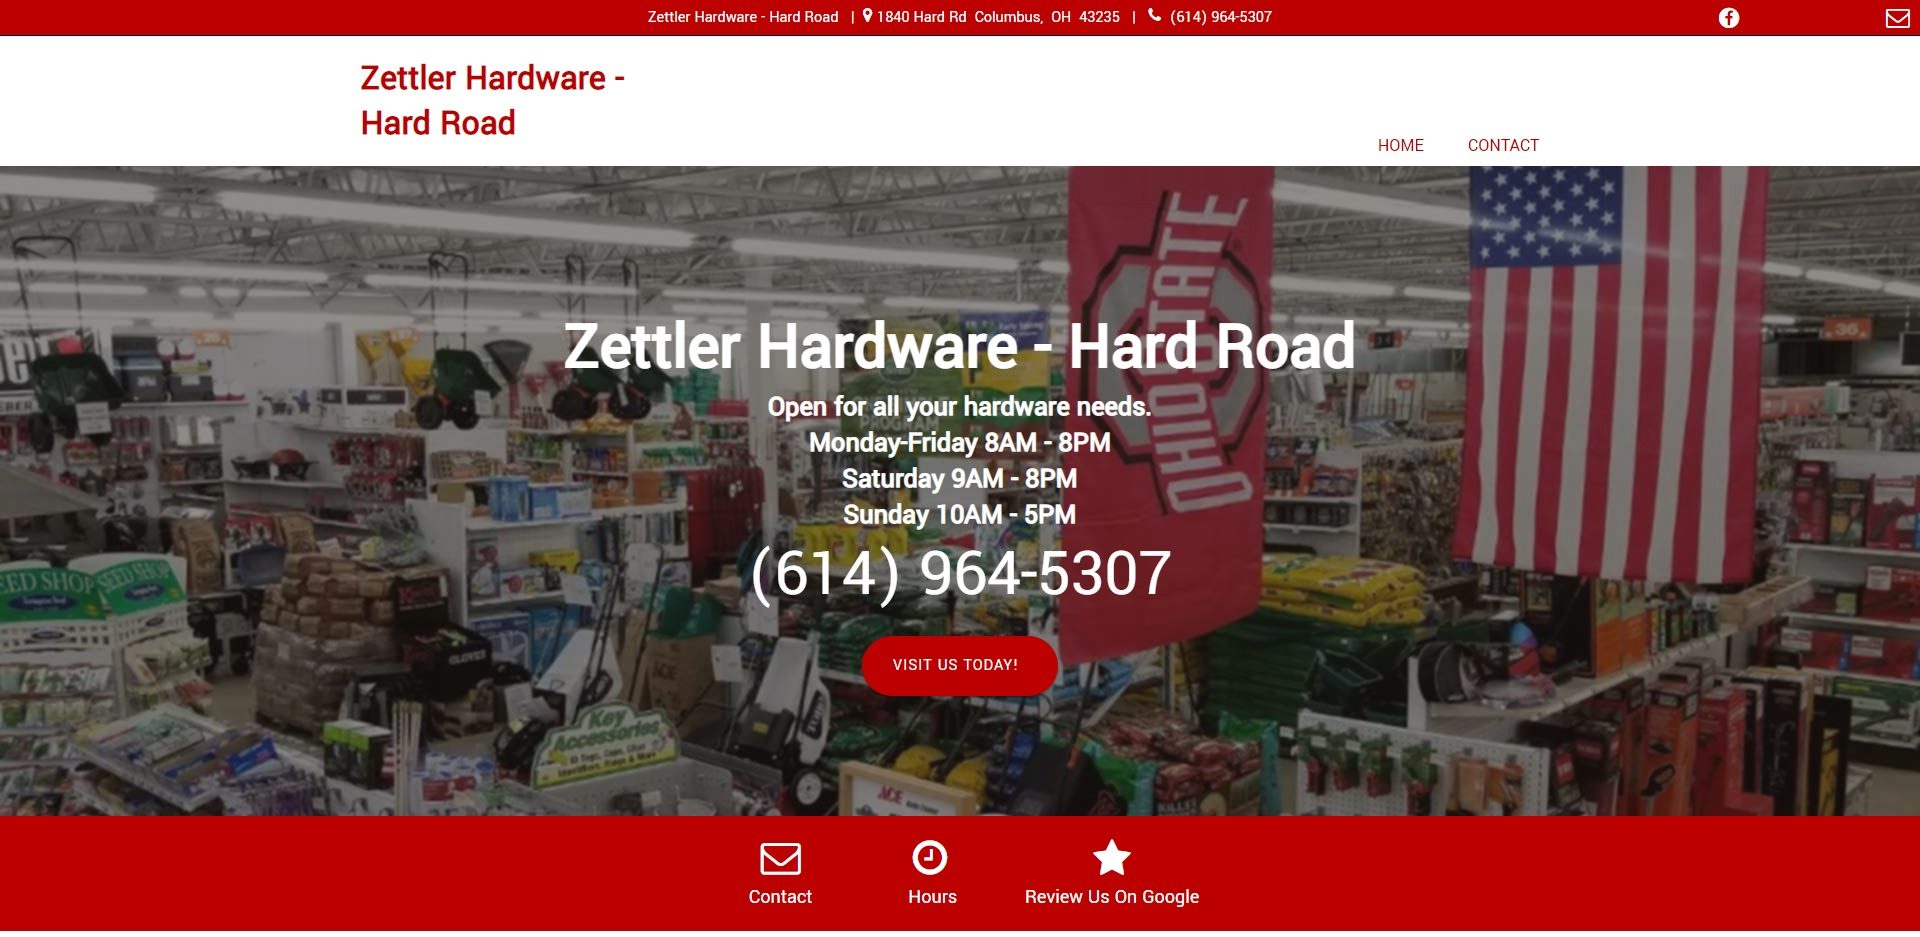 The Best Hardware Stores in Columbus